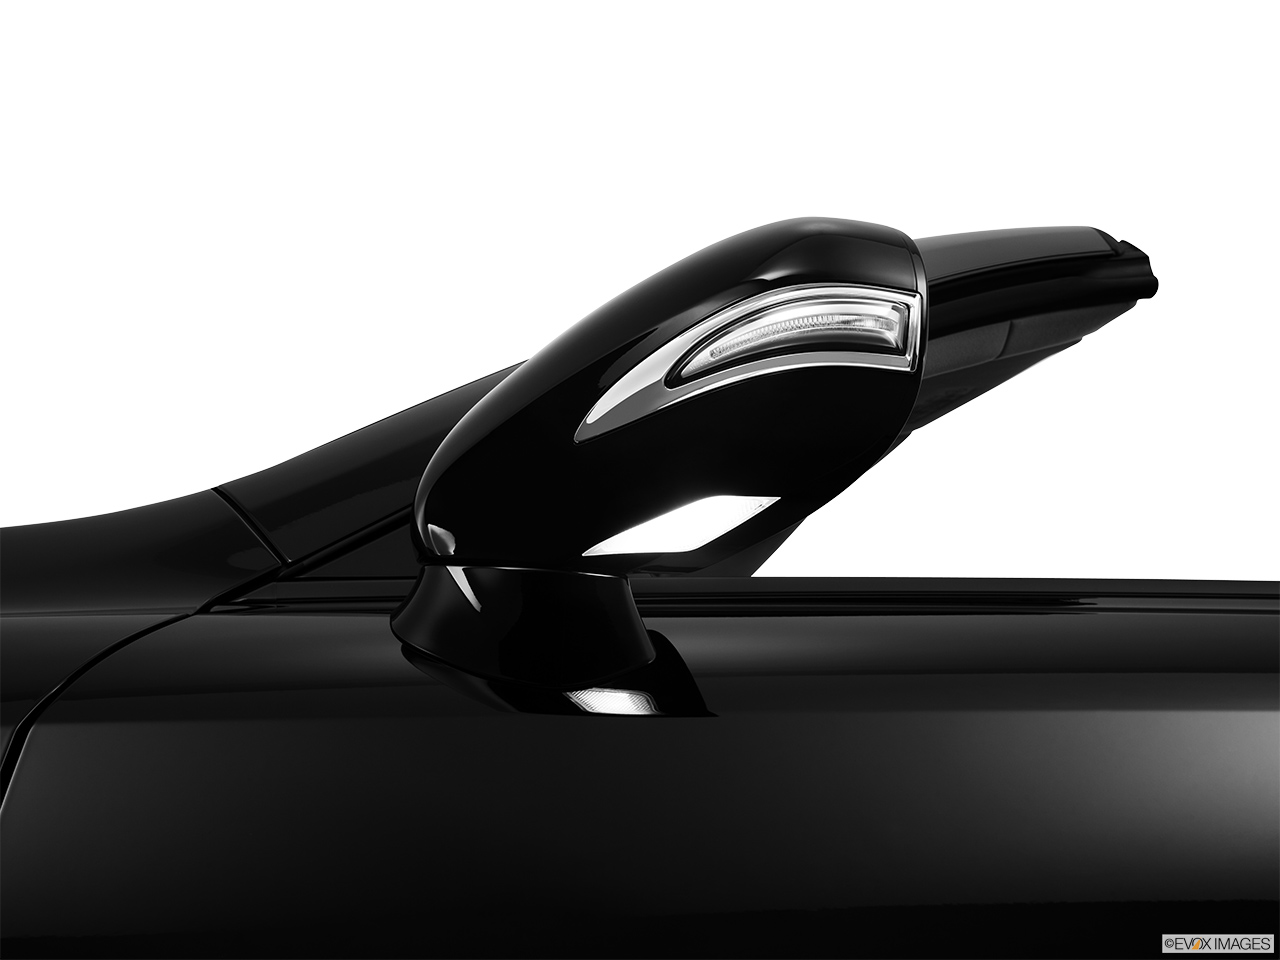 2013 Lexus IS 250C IS 250 C RWD Driver's side puddle lamp, illuminated